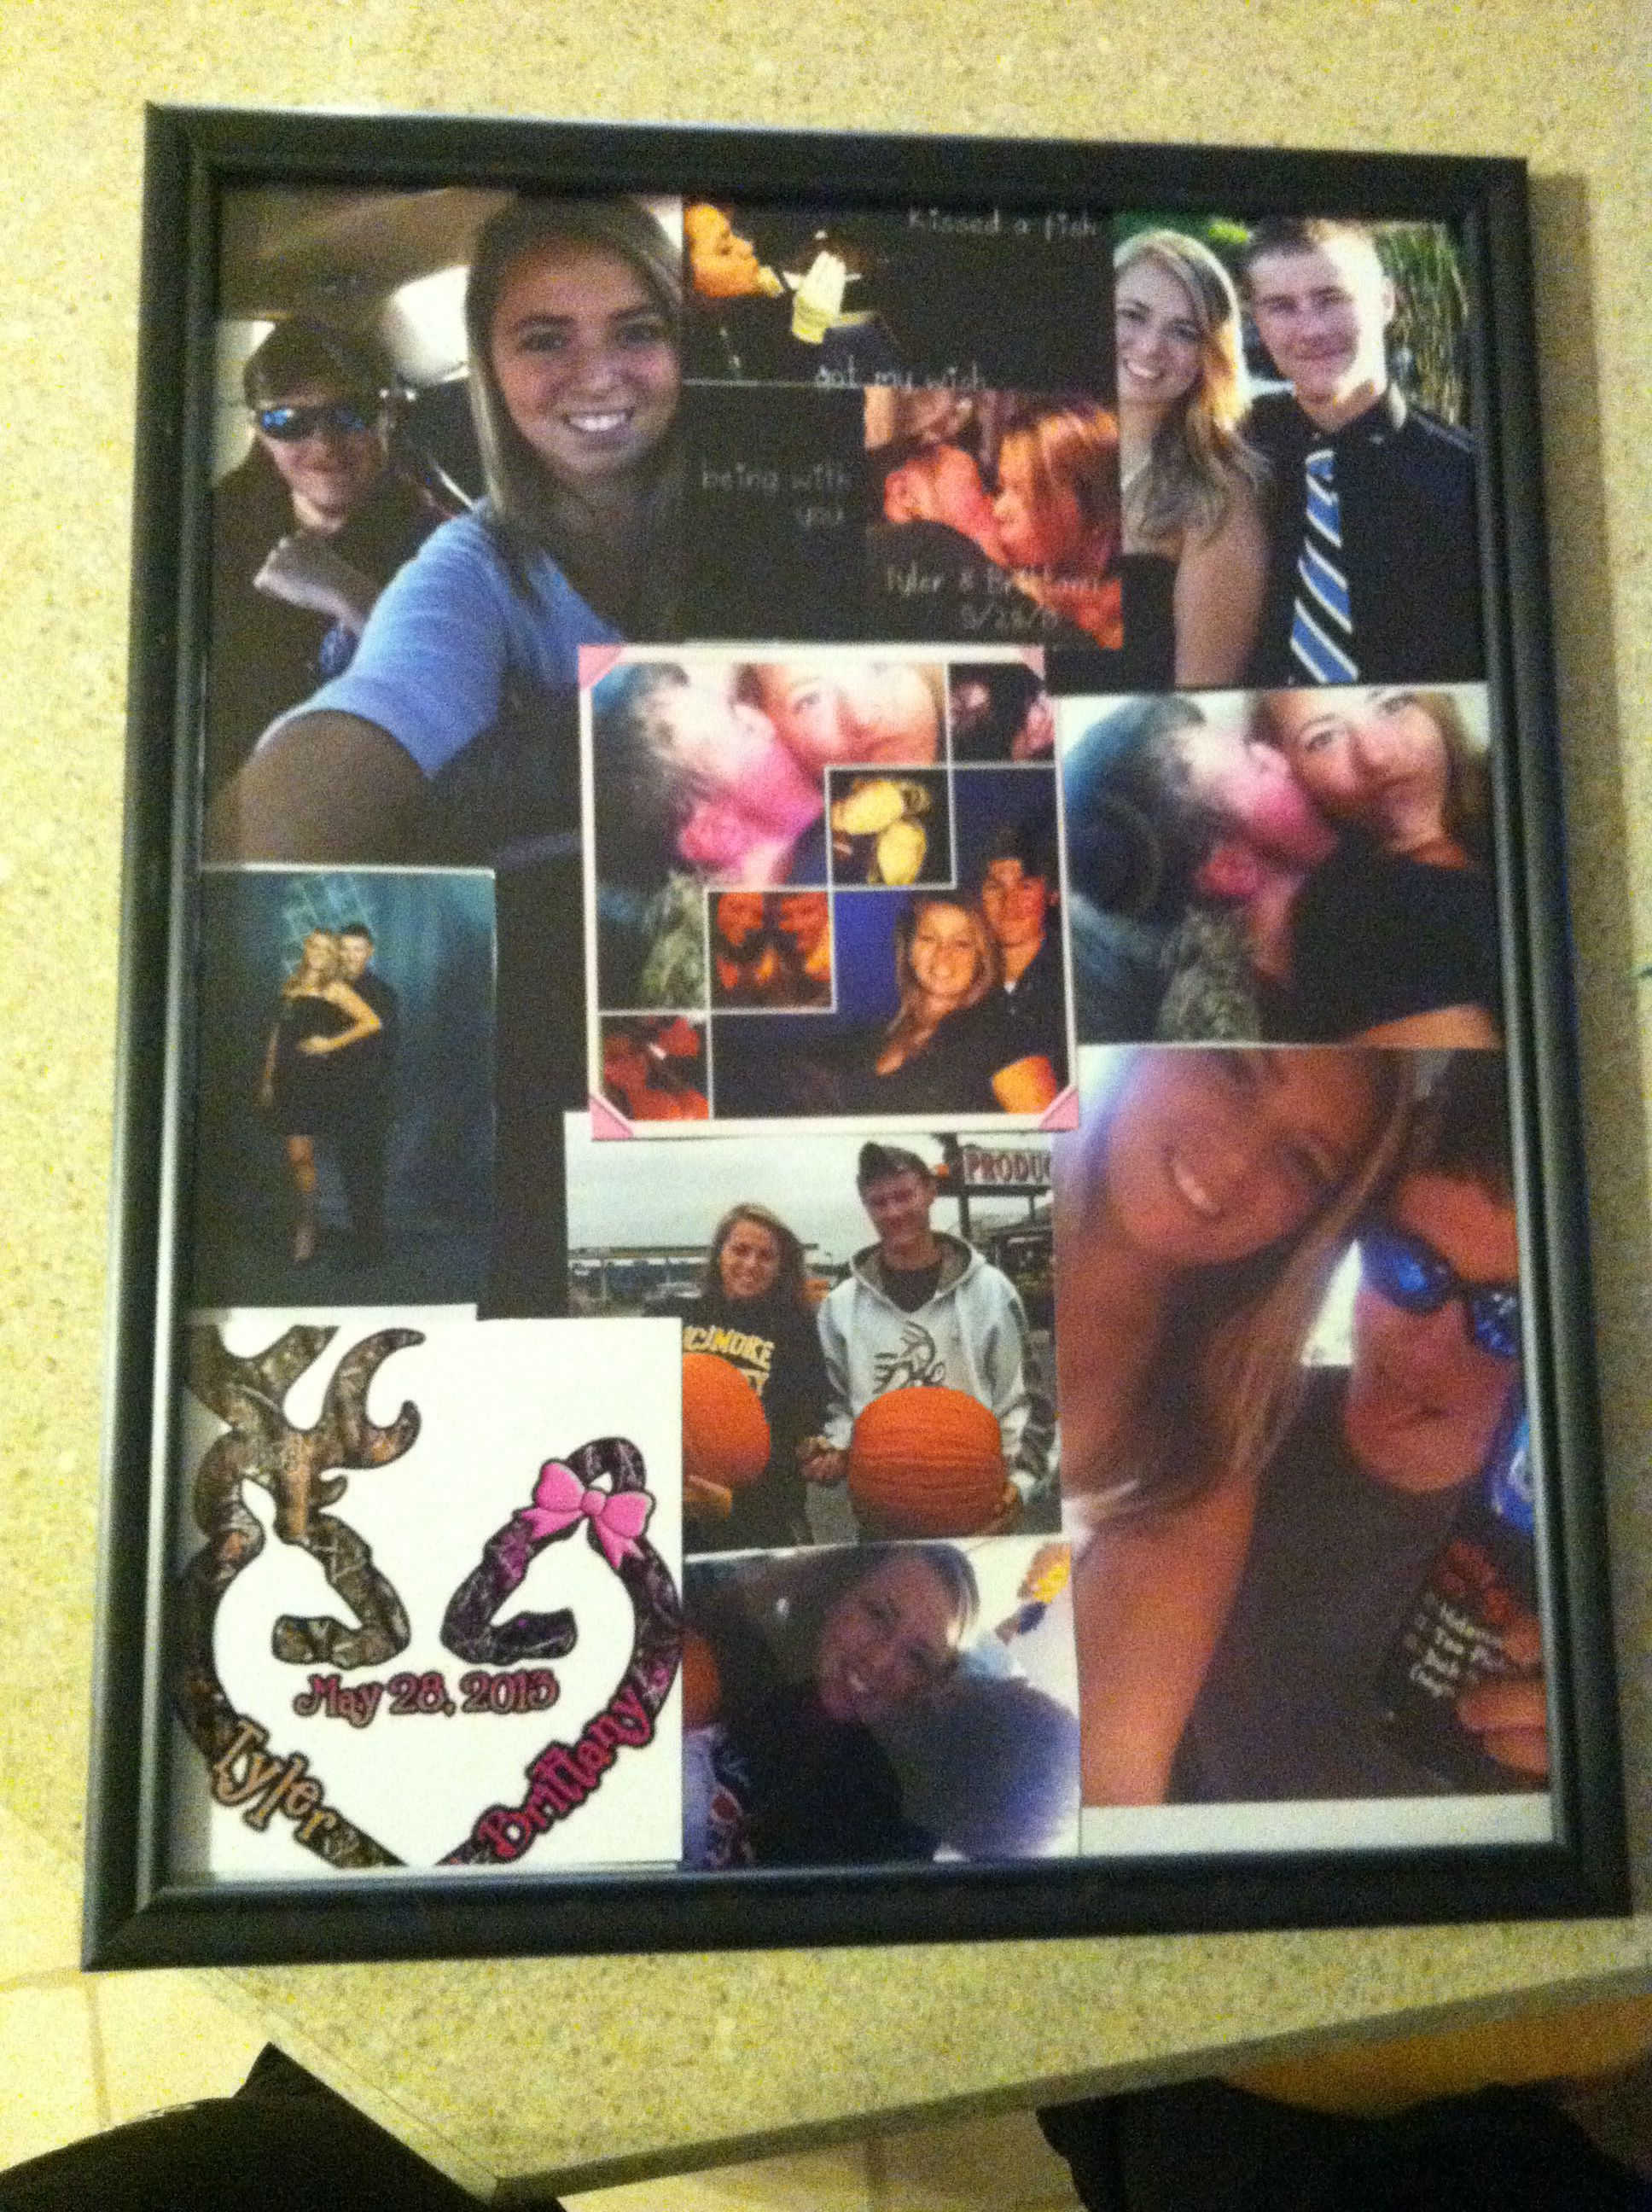 craft boyfriend it only cost 4 one dollar for frame from dollar tree